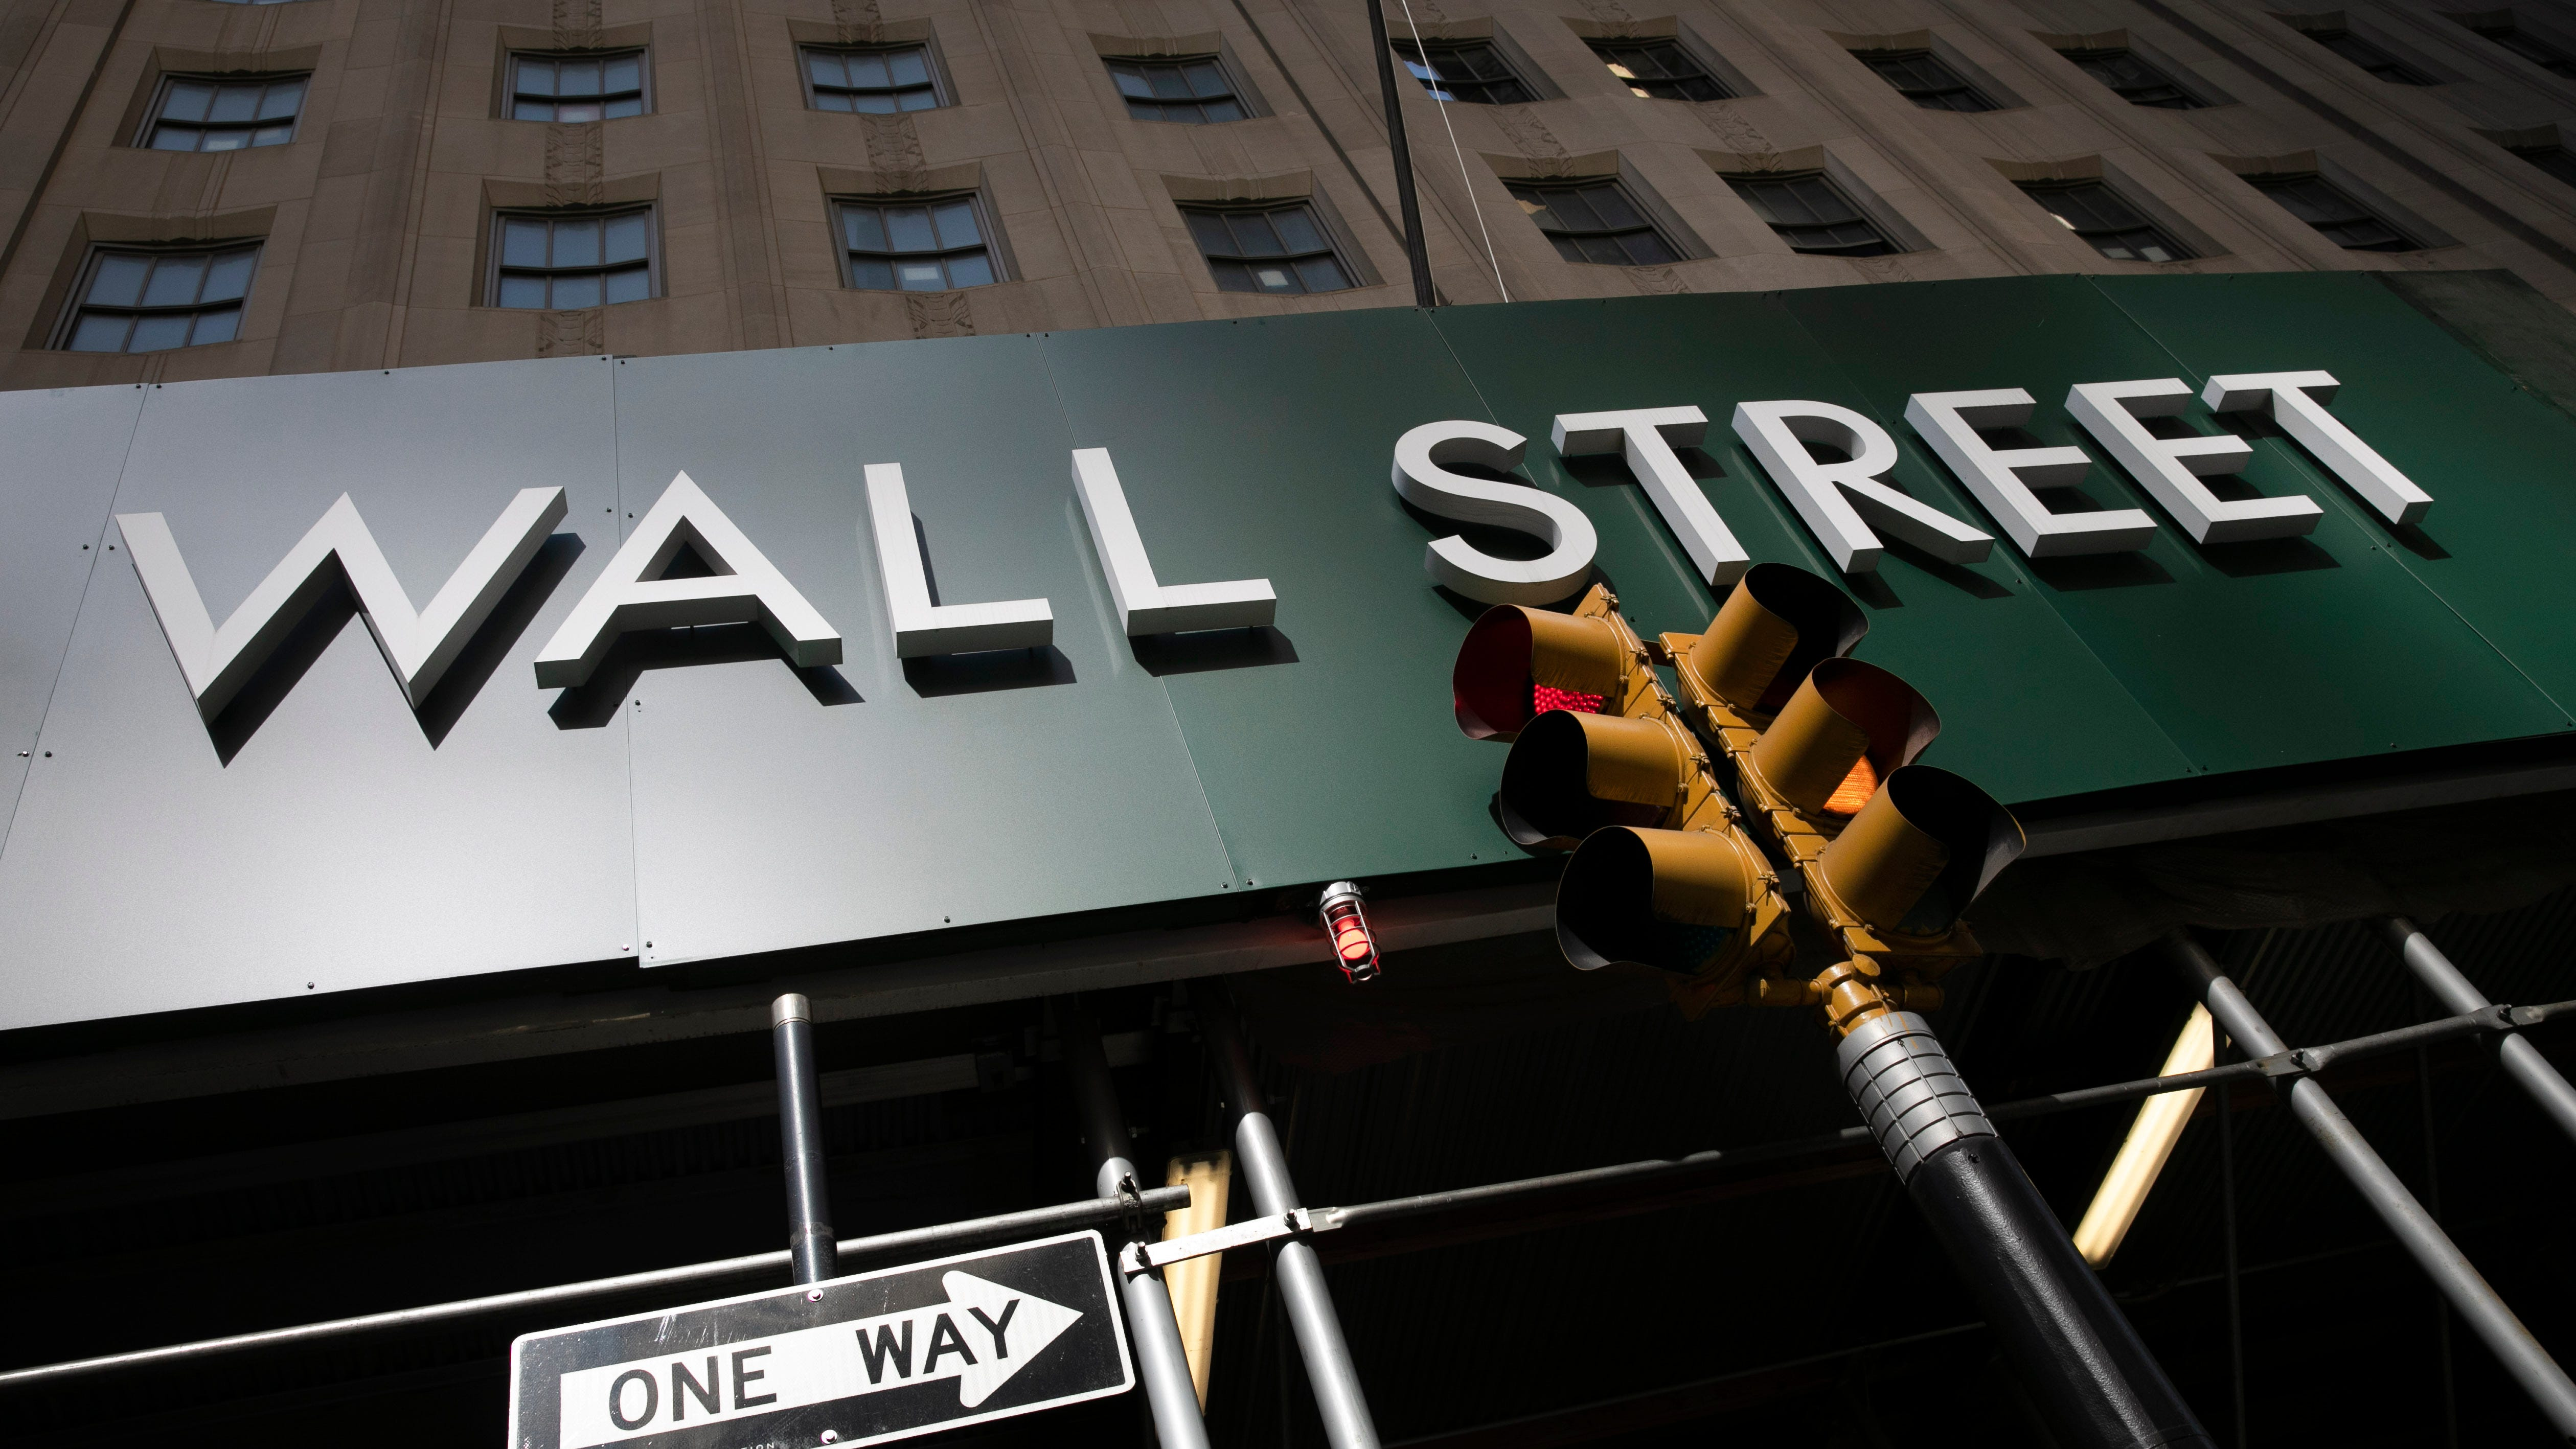 Amid improved economic outlook, Michigan stocks ride wave of Wall Street rally